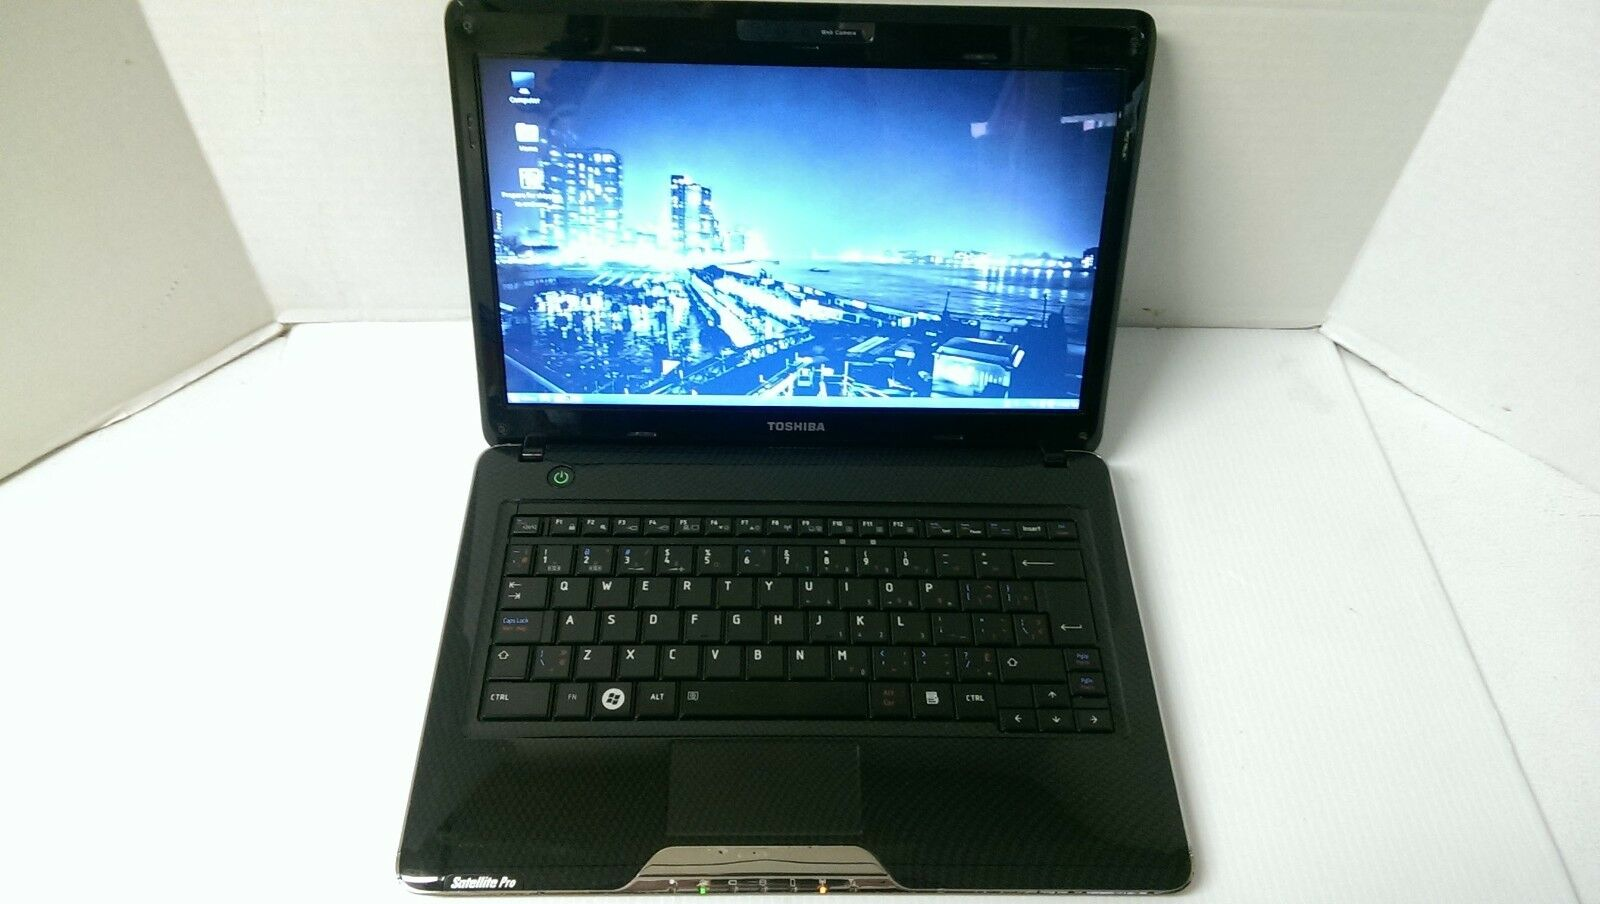 Toshiba Satellite Pro T130 Ultra Portable Windows 10 Laptop Core 2 Duo U9400